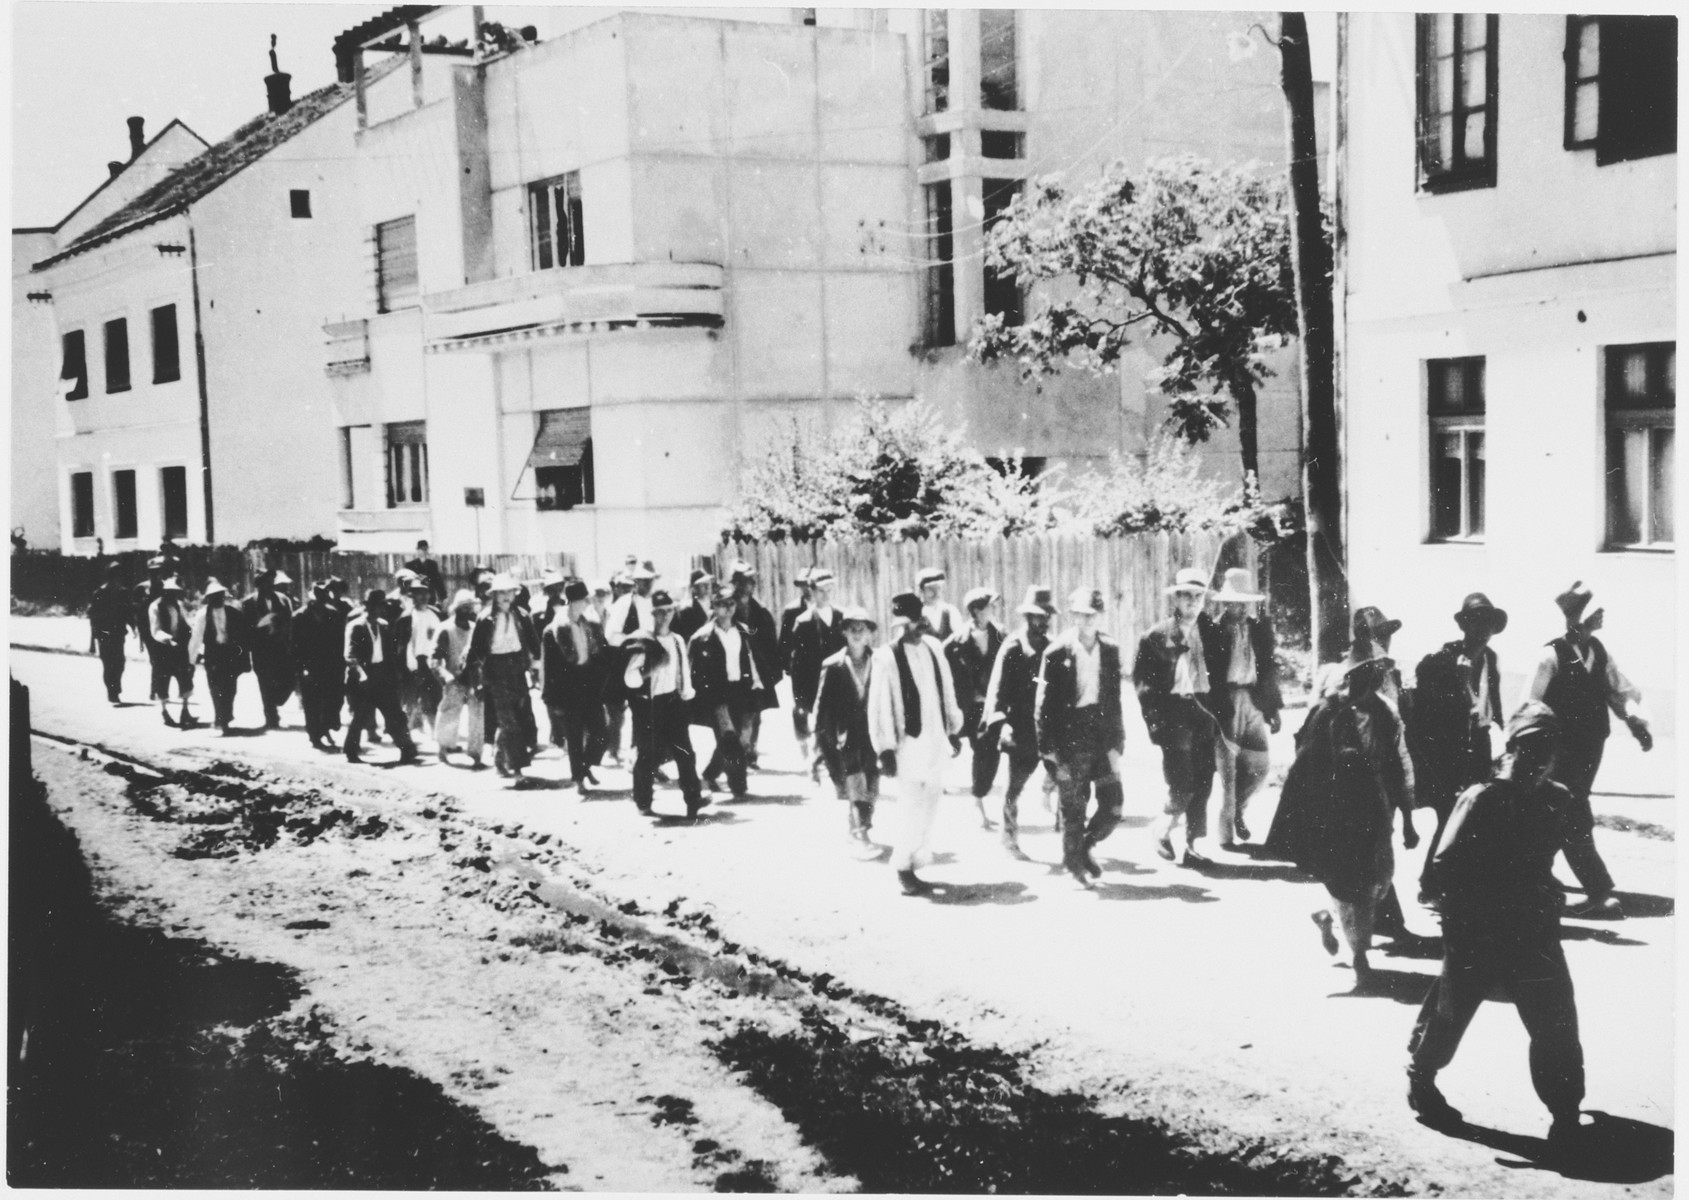 [Probably Serbian villagers from the Kozara region who have been rounded-up for deportation, marching in a column under Ustasa guard through the streets of a town.]